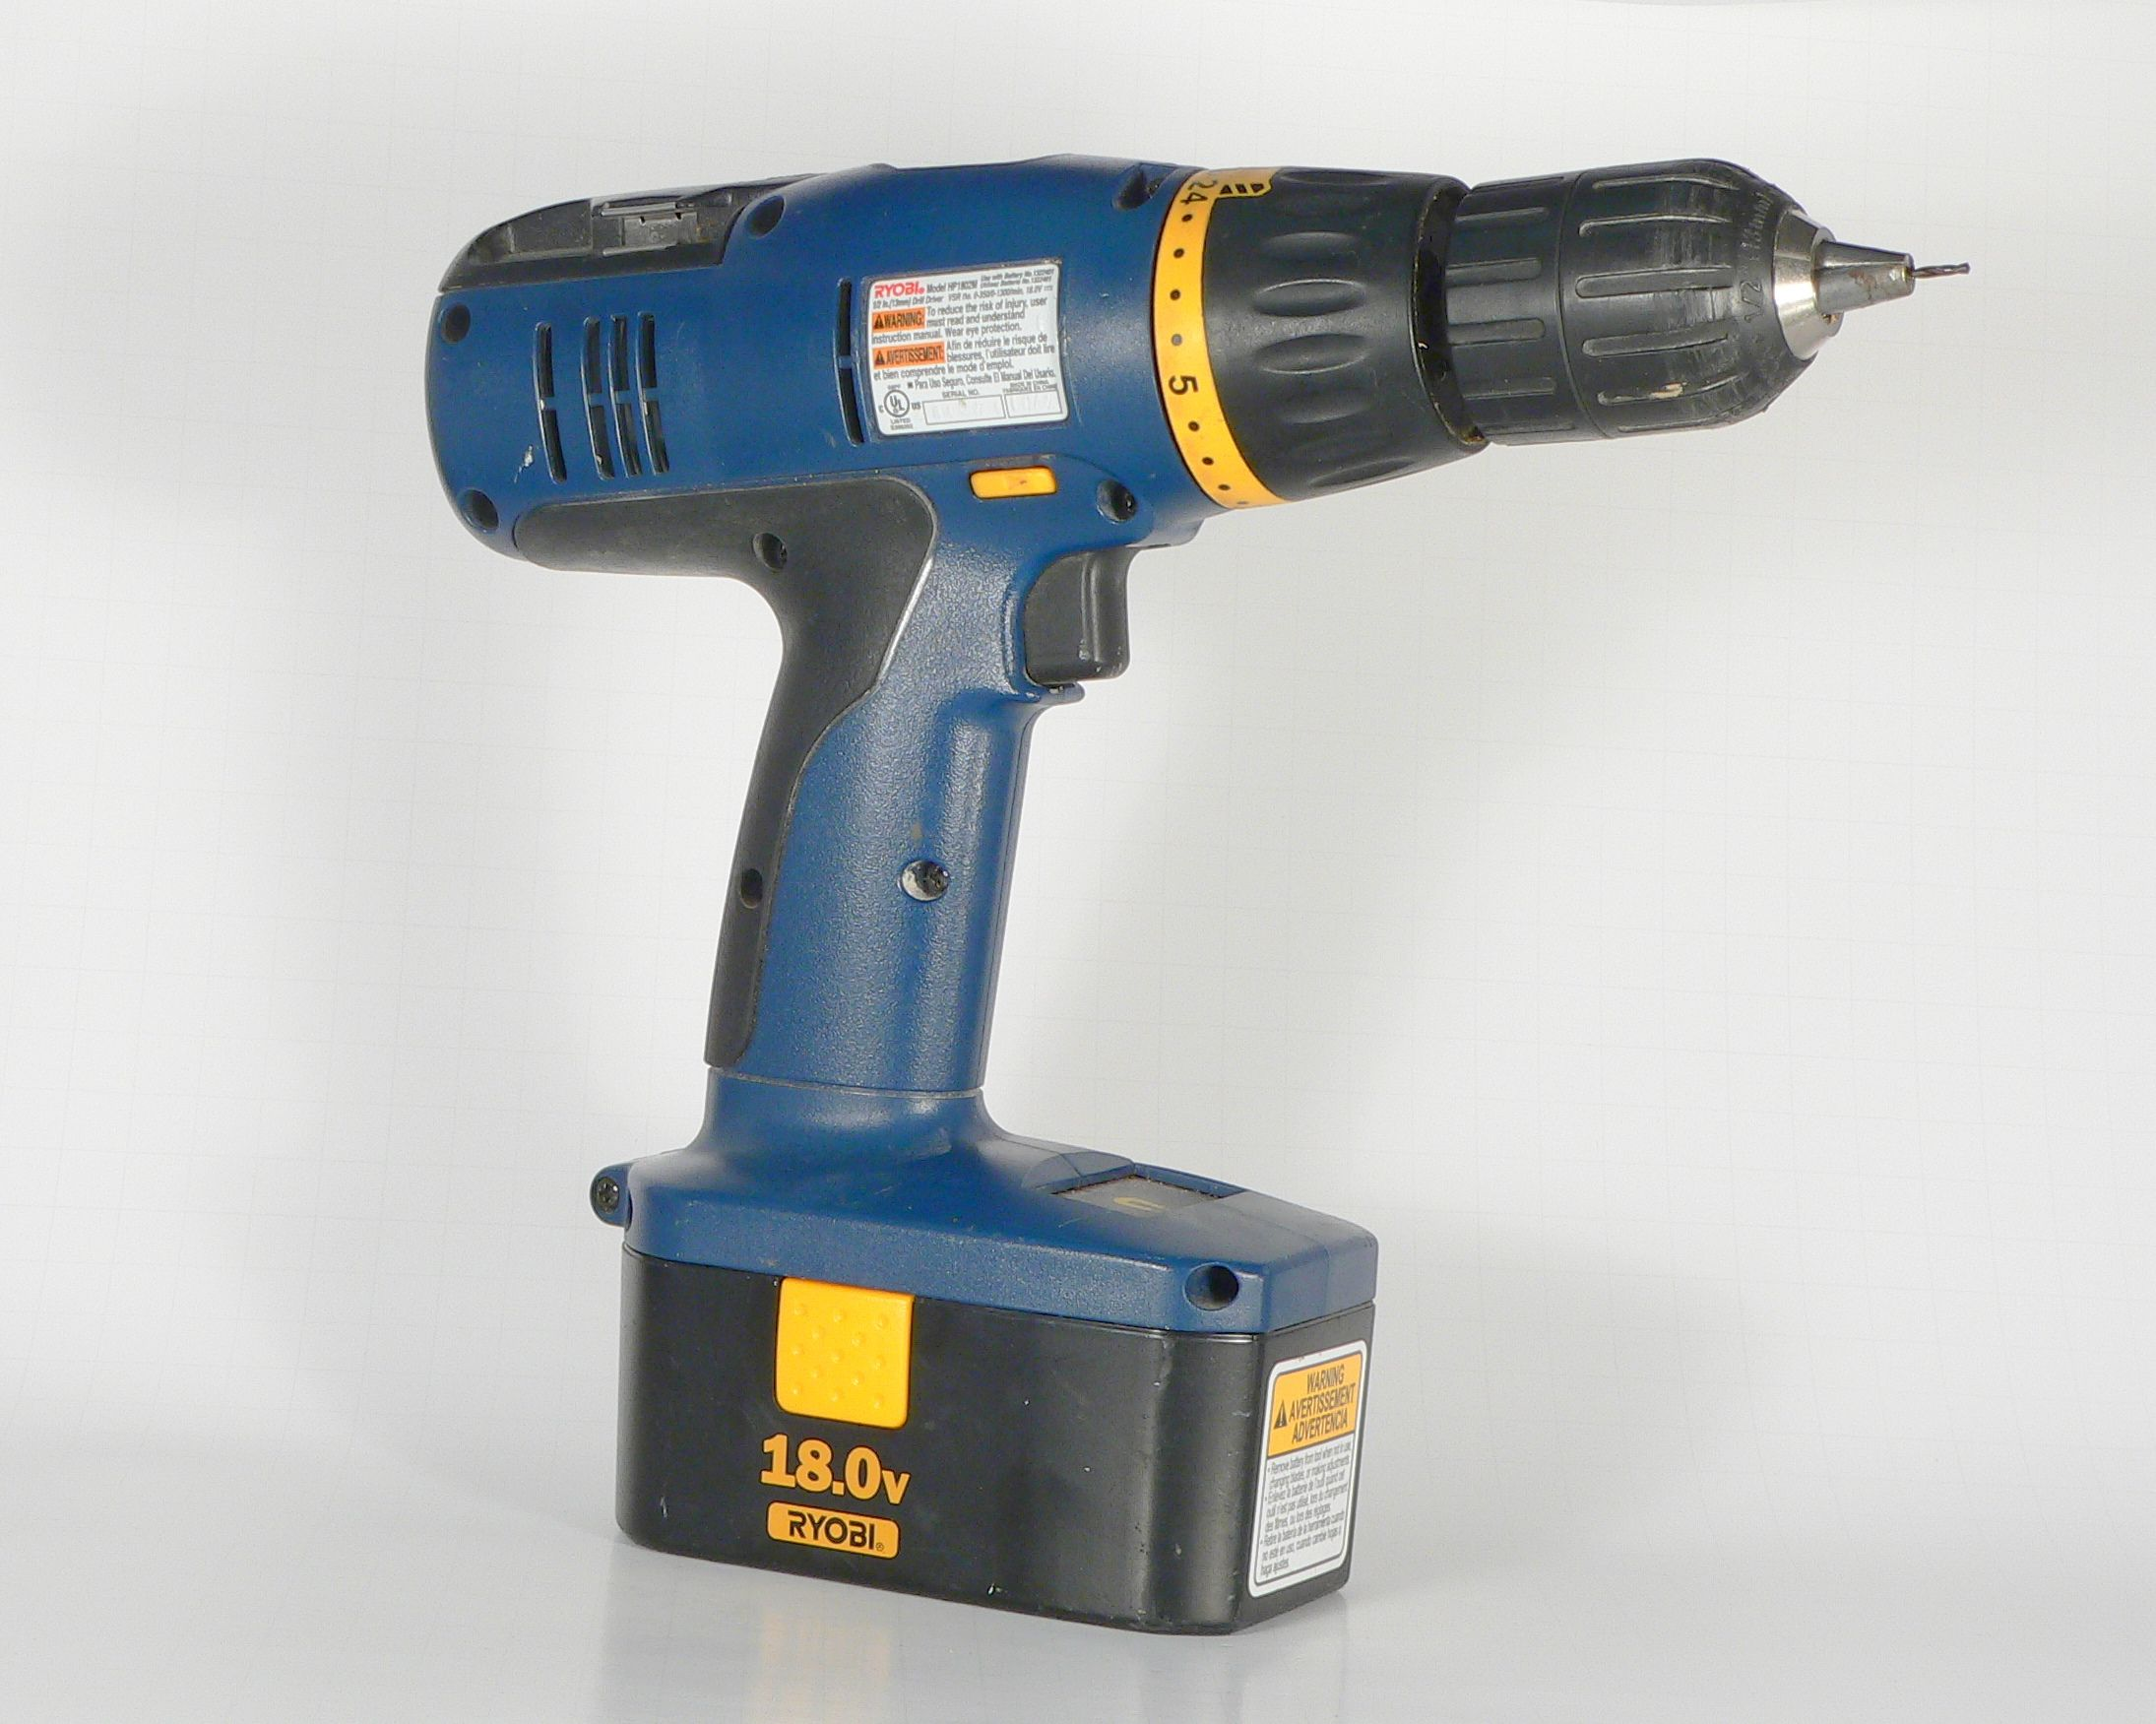 What Are The Different Types Of Power Tools: Types Of Power Drills - Google Search